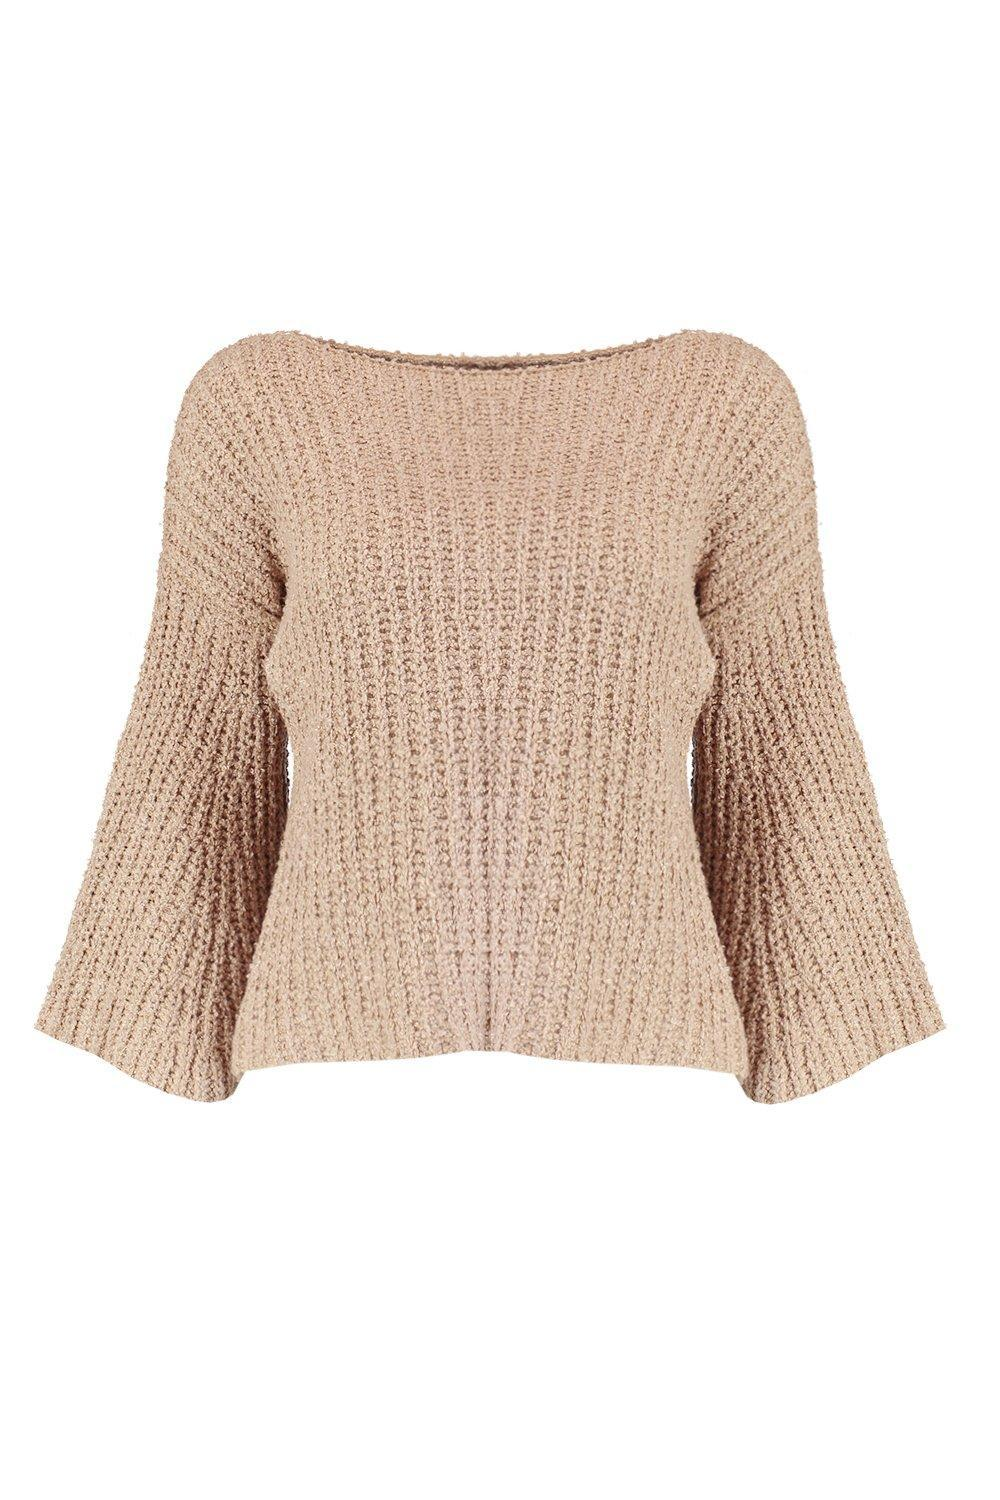 d90cbd94523d Gallery. Previously sold at  Boohoo · Women s Pink Jumpers Women s Flared  Sleeved ...